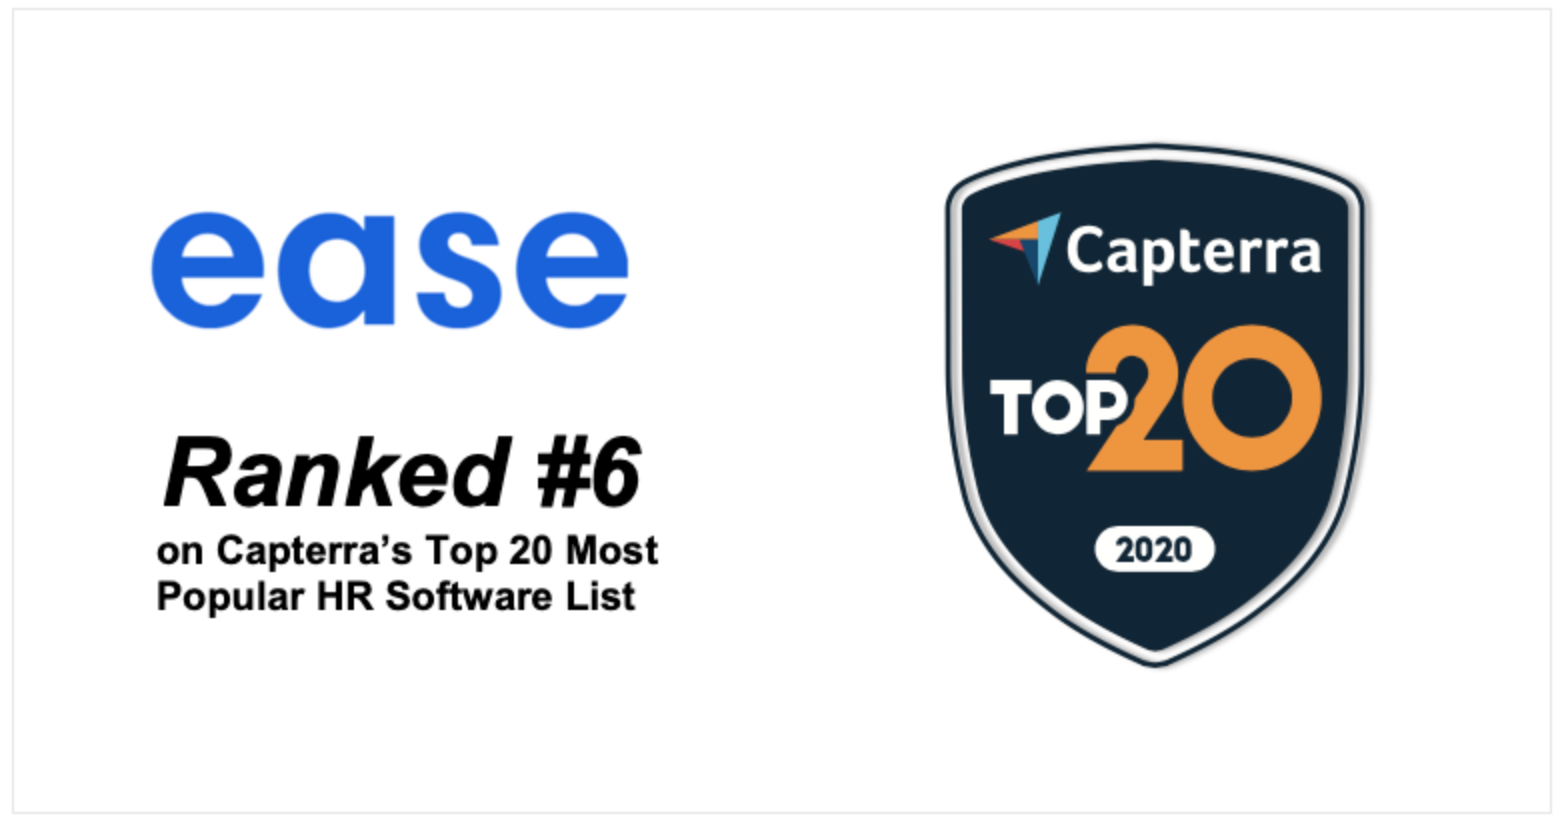 Ease Named in Capterra's Top 20 Most Popular Human Resource Software